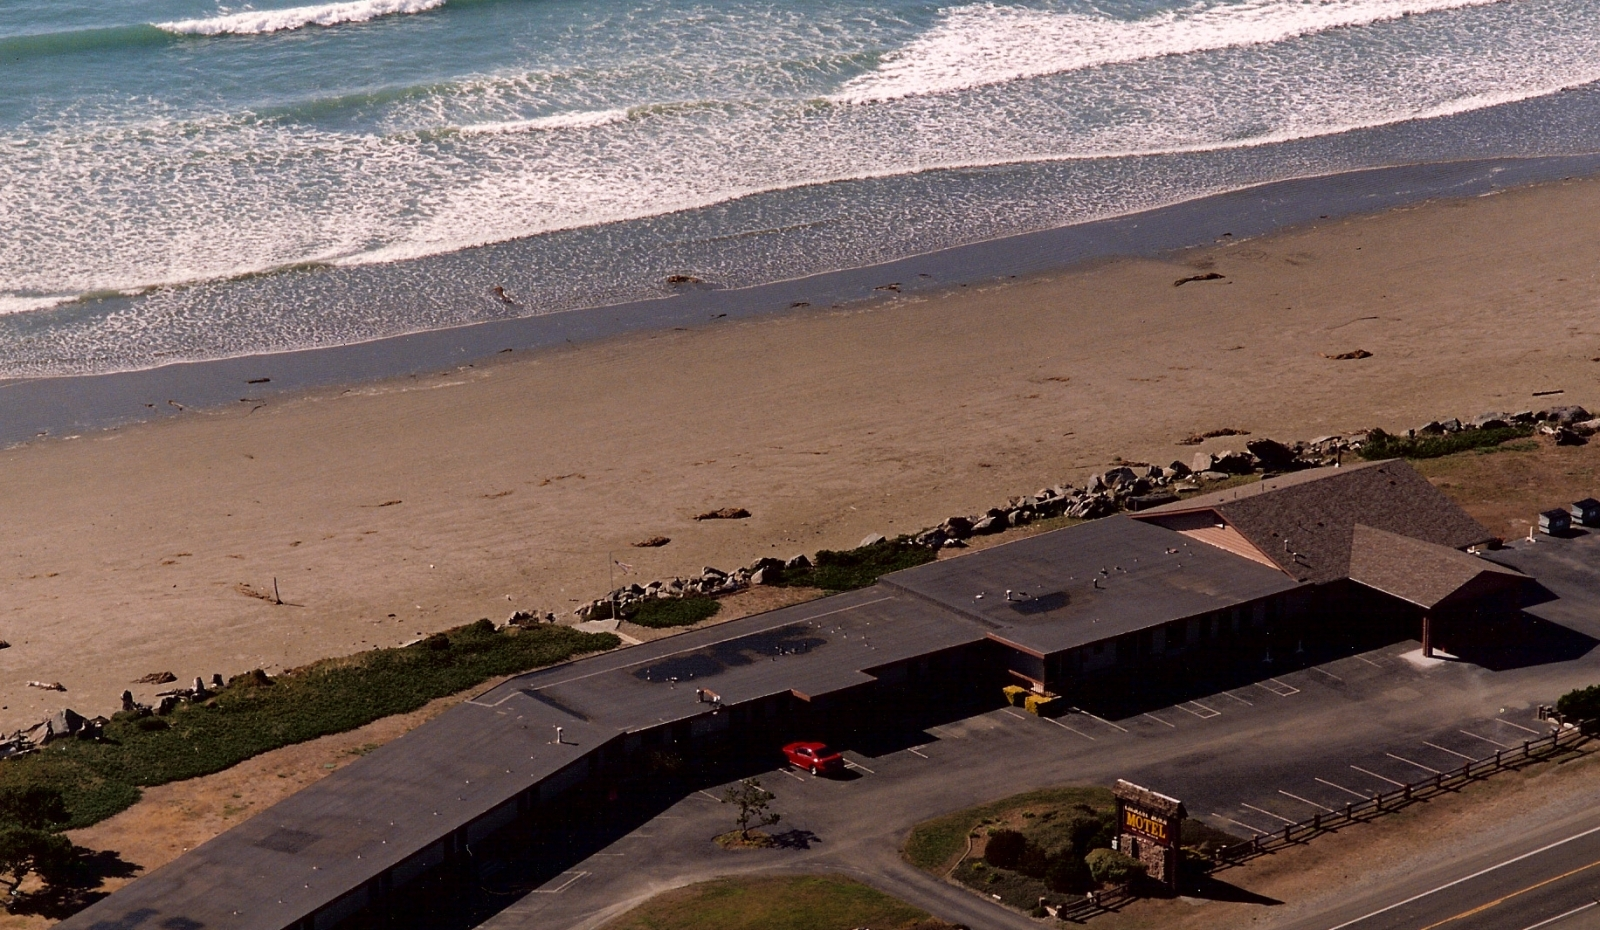 arial view of the motel with ocean